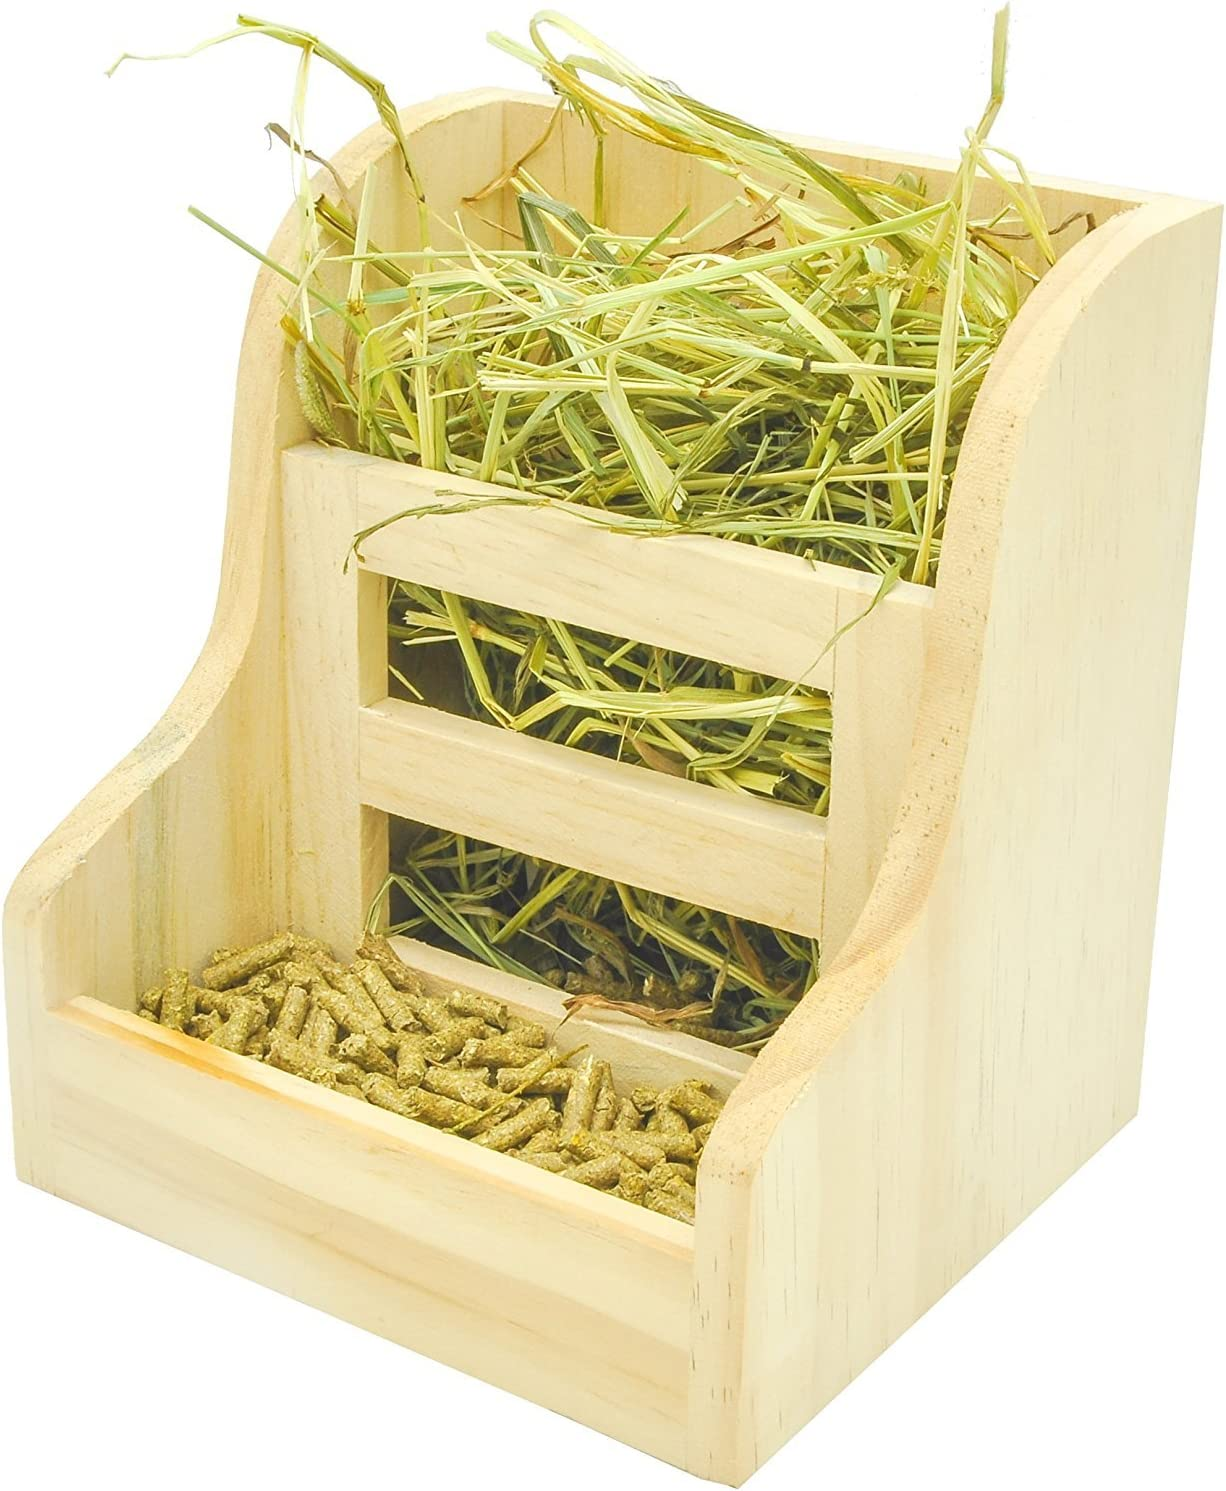 Niteangel Grass and Food Double Use Feeder, Wooden Hay Manger for Rabbits, Guinea Pigs